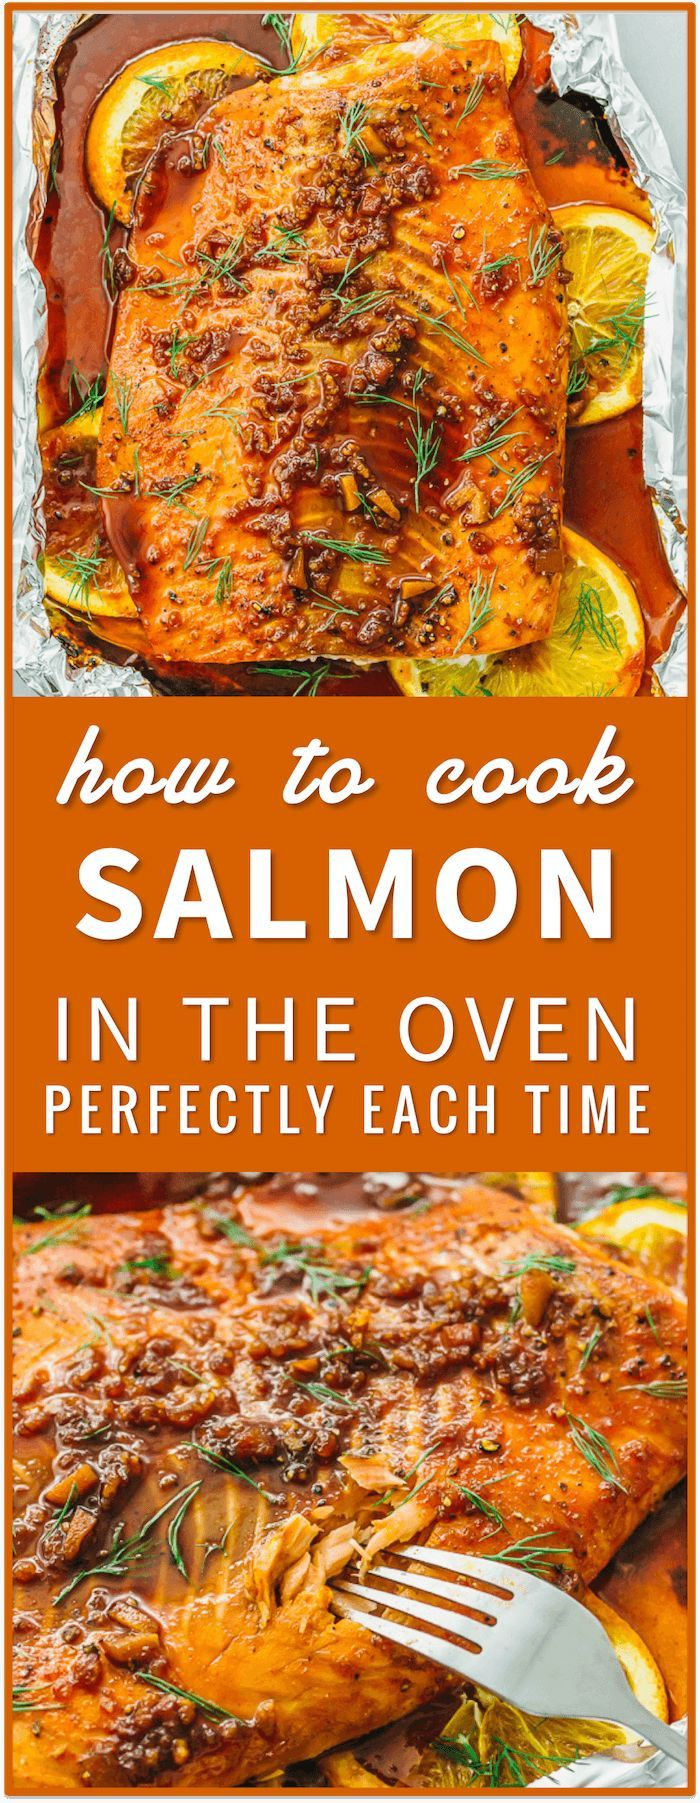 117 best fish and shrimp images on pinterest seafood recipes learn how to cook salmon in the oven perfectly every time using this easy foolproof recipe ccuart Image collections